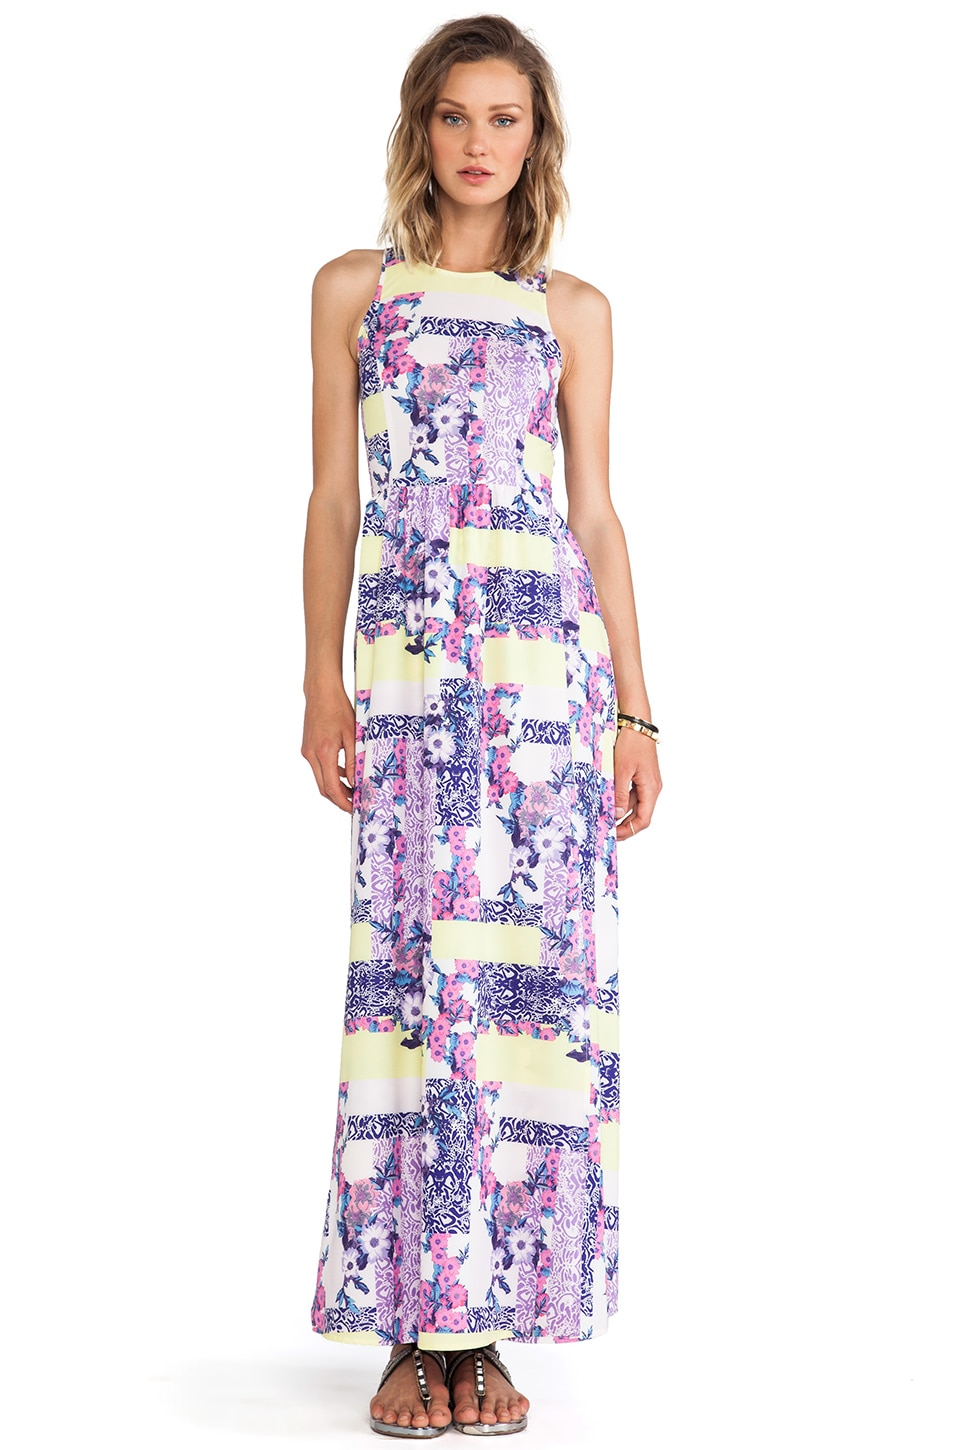 ISLA_CO Love Soaked Maxi Dress in Geo Pansy Print